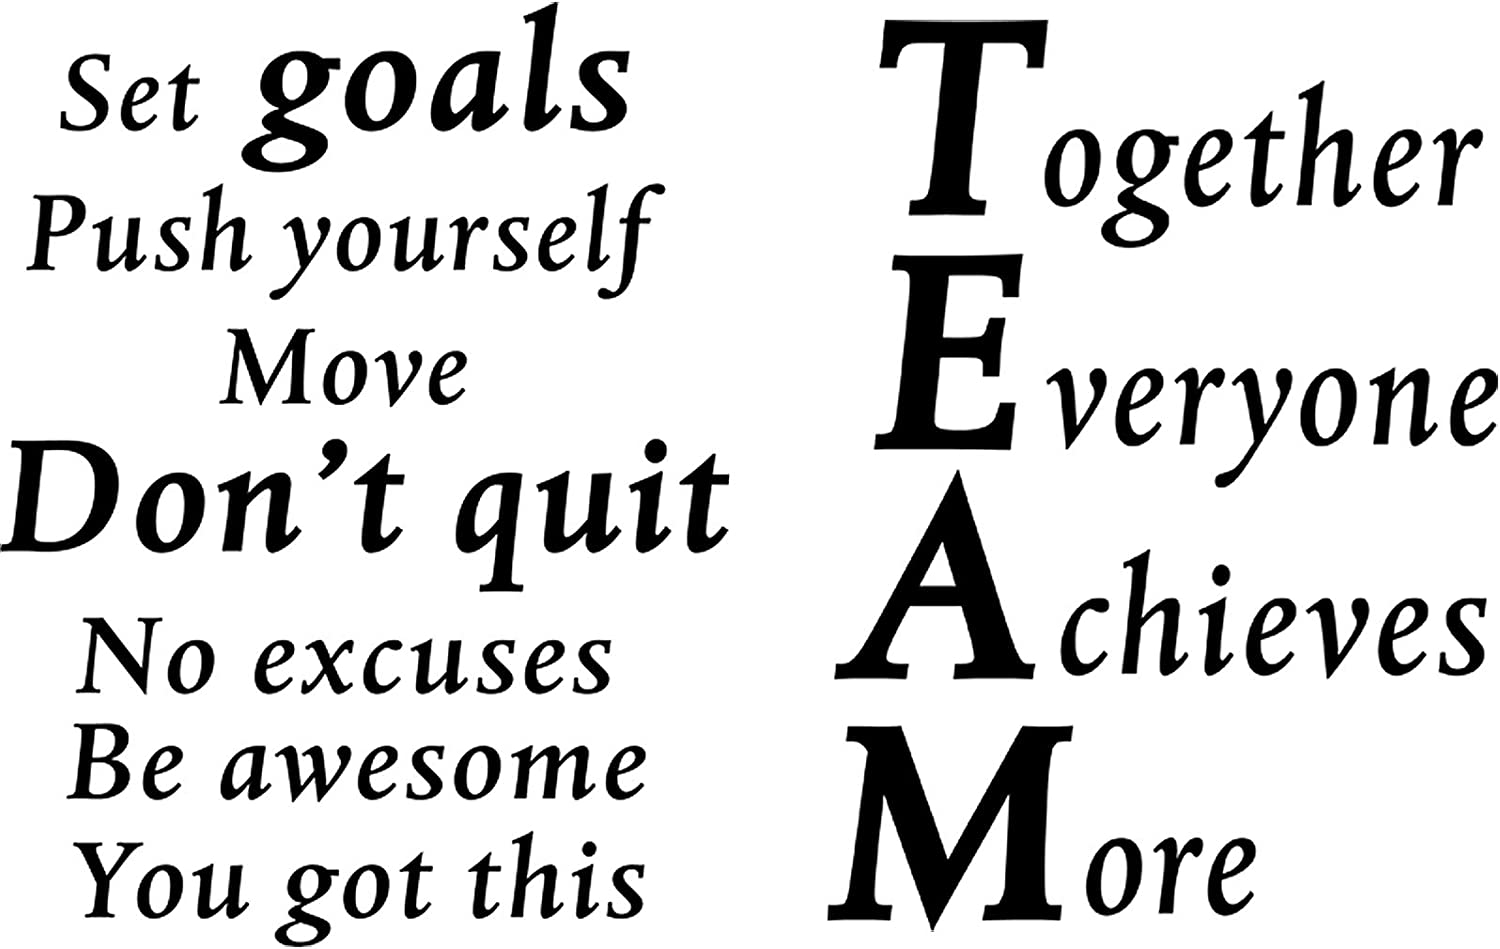 2 Sheets Motivational Wall Decals Vinyl Inspirational Quotes Stickers Together Everyone Achieves More Office Positive Sayings Wall Decals for Office Classroom Team Gym Home Bedroom Decor